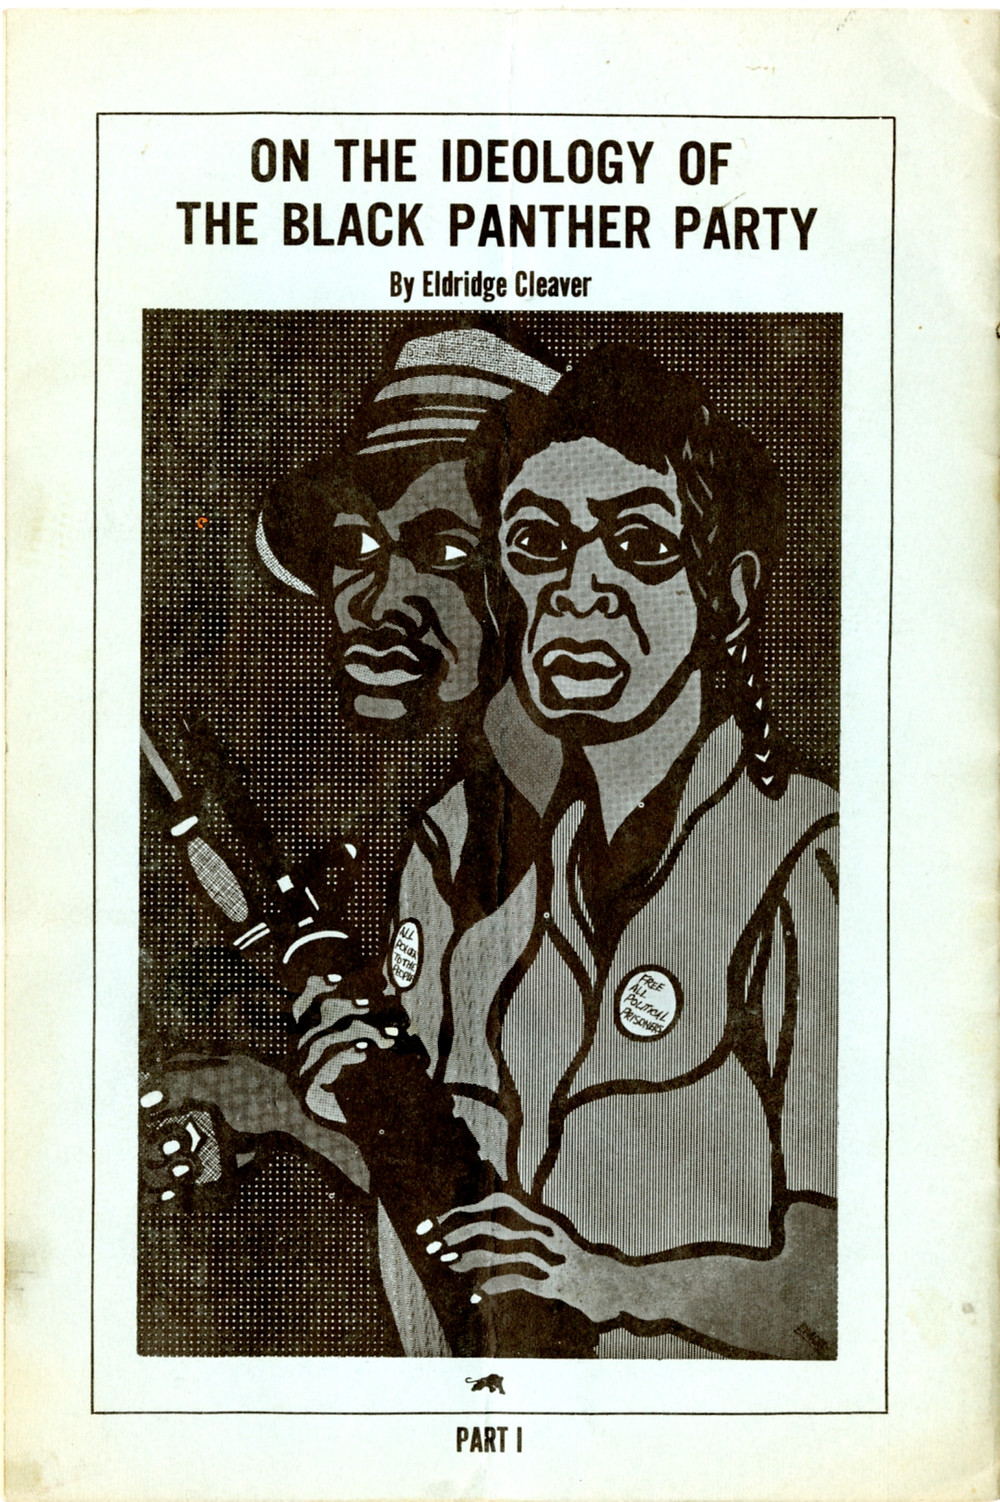 On the ideology of the black panther party